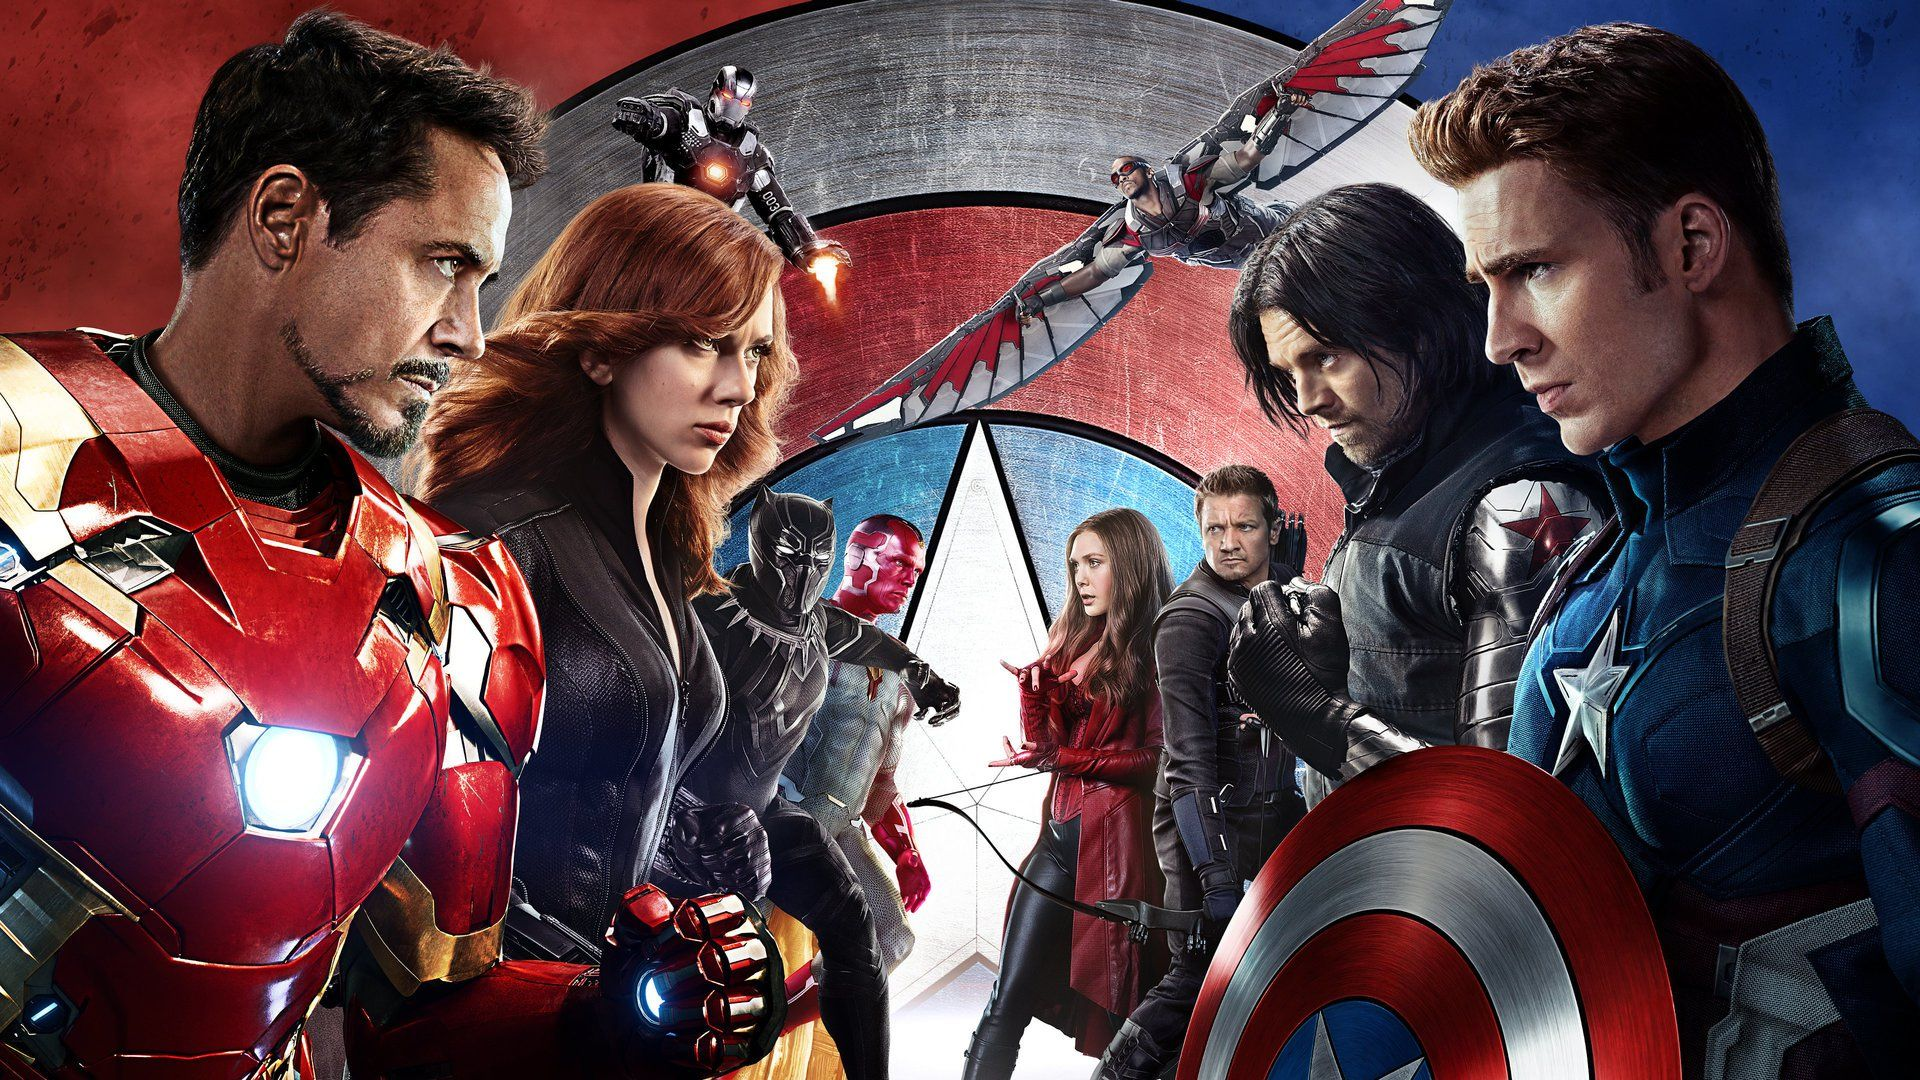 Countdown to Endgame: MCU Took Major Risks With Phase 3